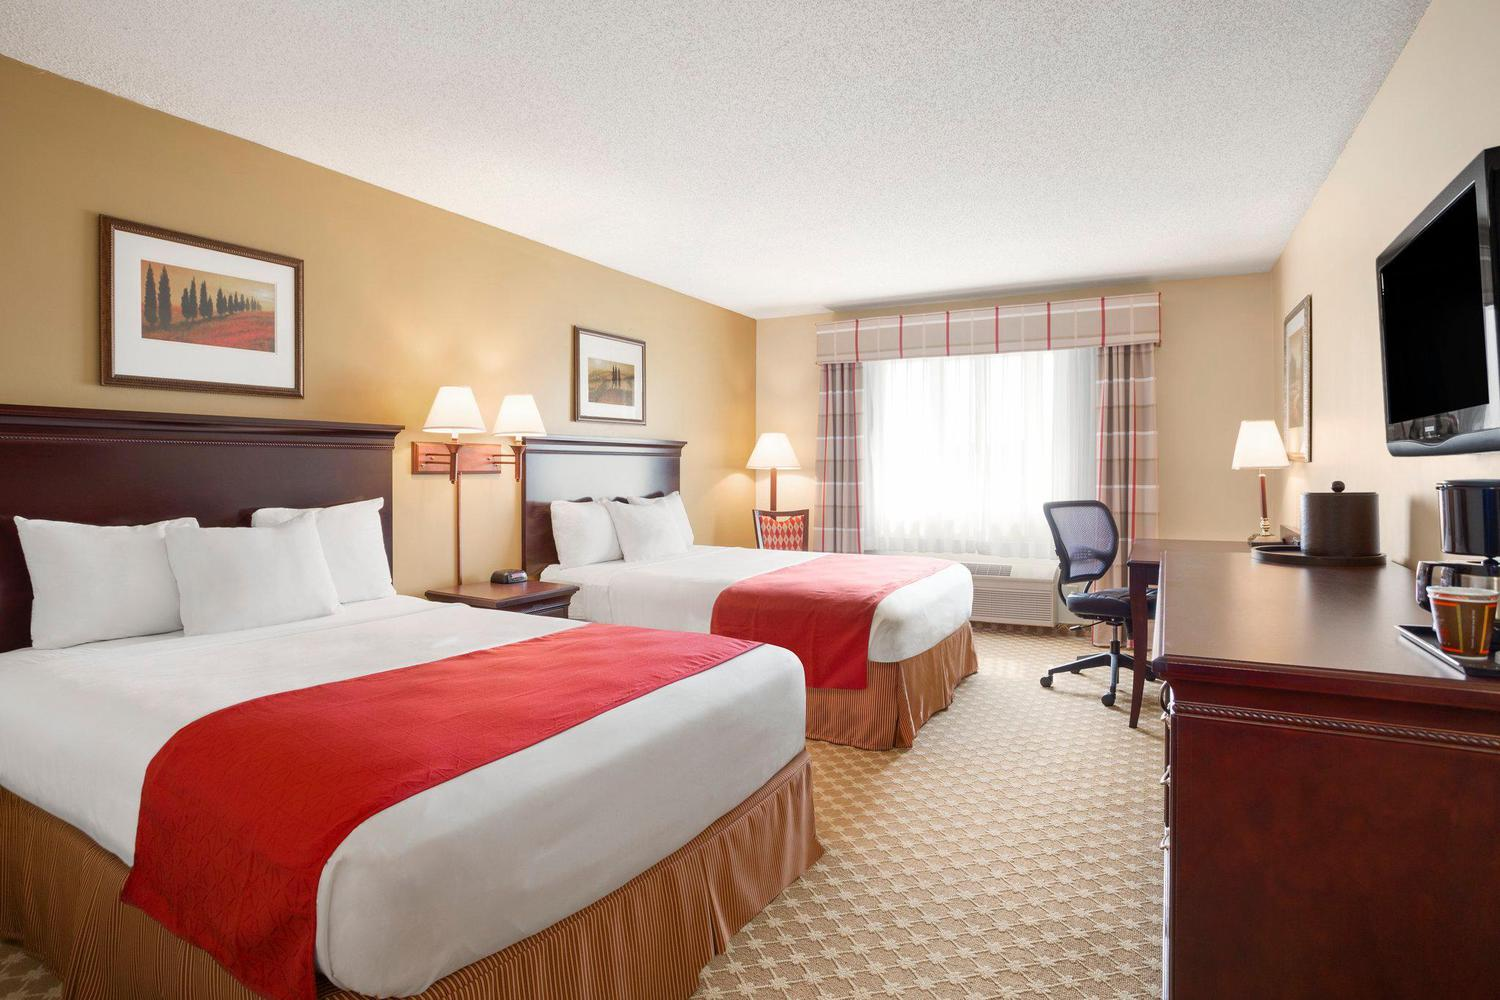 stay previous luxury boutique extended lincoln in magnolia omaha ne rooms hotels next hotel